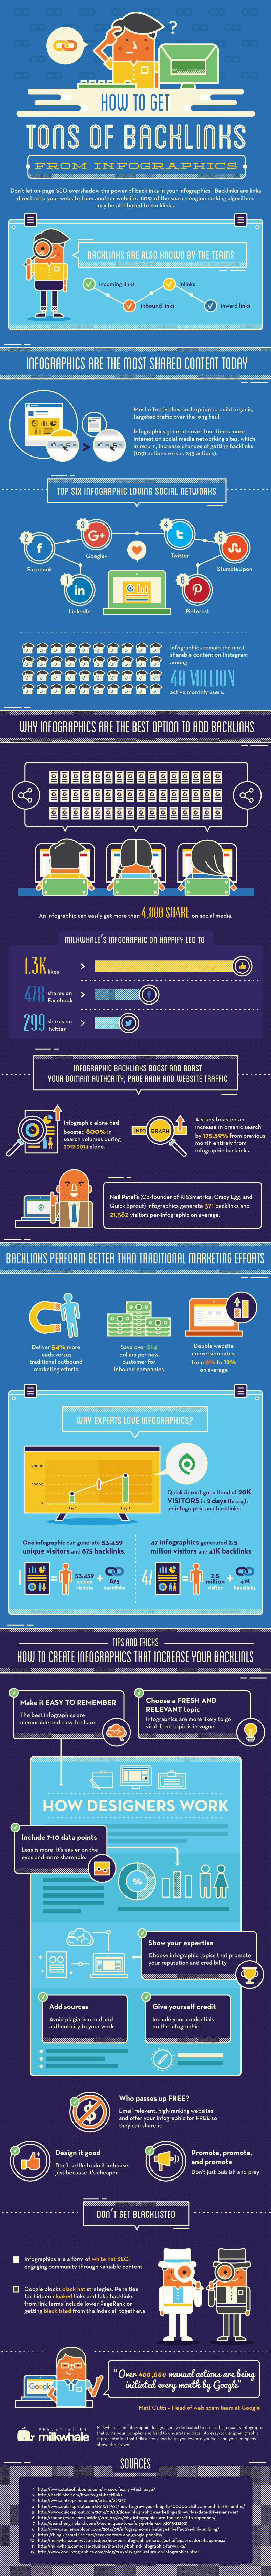 How to Get Tons of Backlinks From Infographic